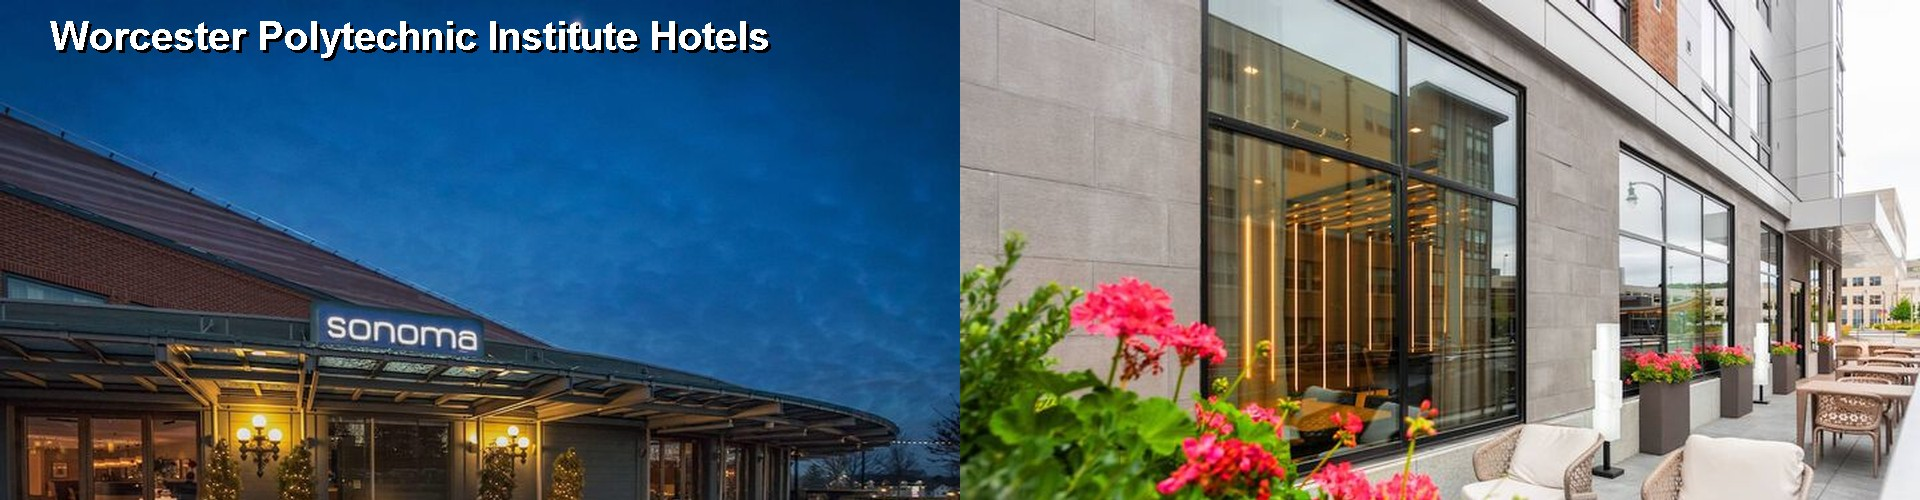 5 Best Hotels near Worcester Polytechnic Institute